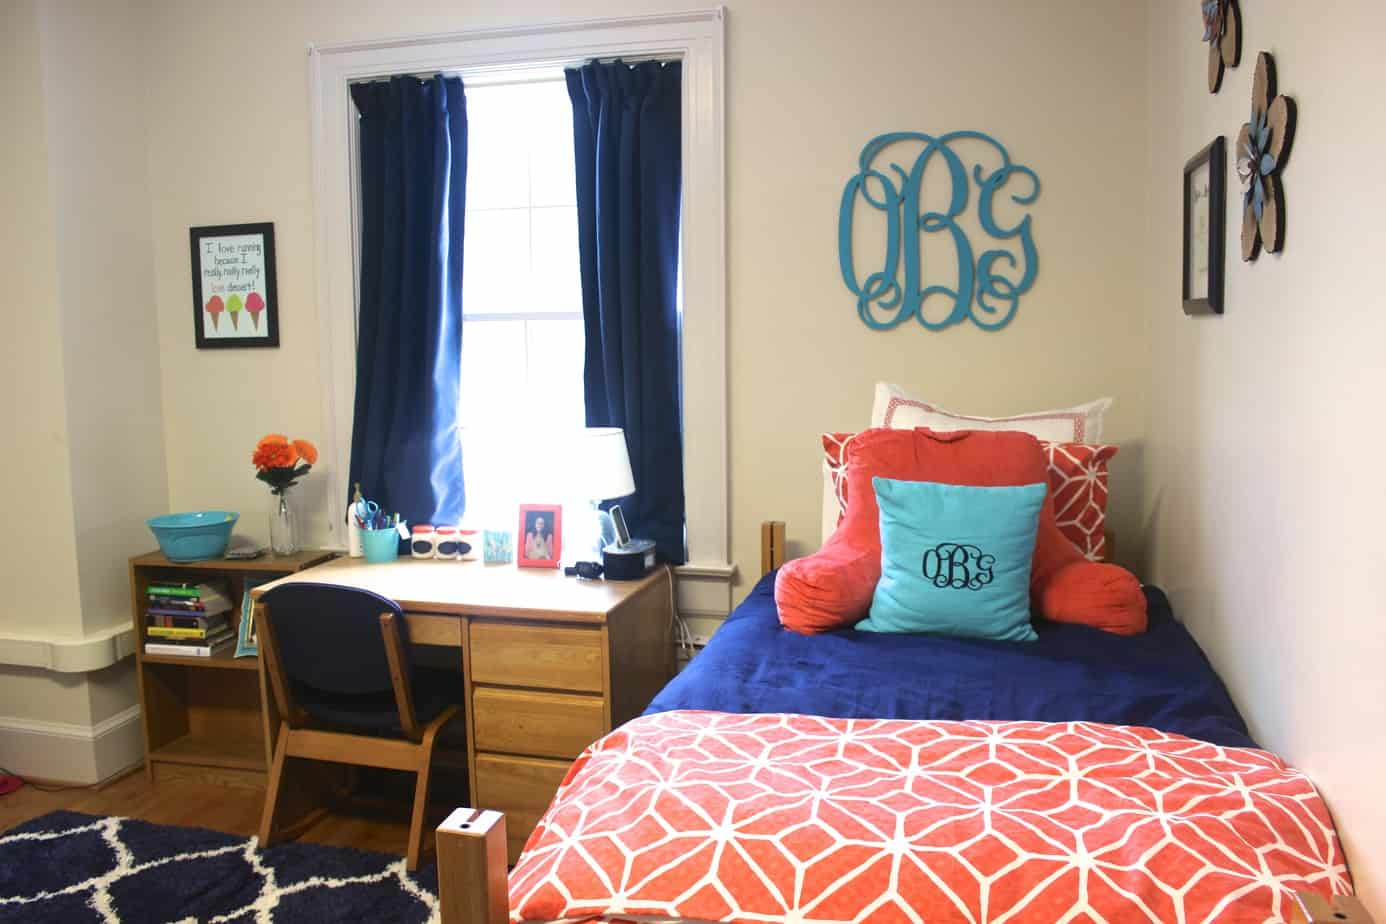 Dorm room inspiration: navy, coral, & turquoise! See the whole dorm room tour by clicking the pin.